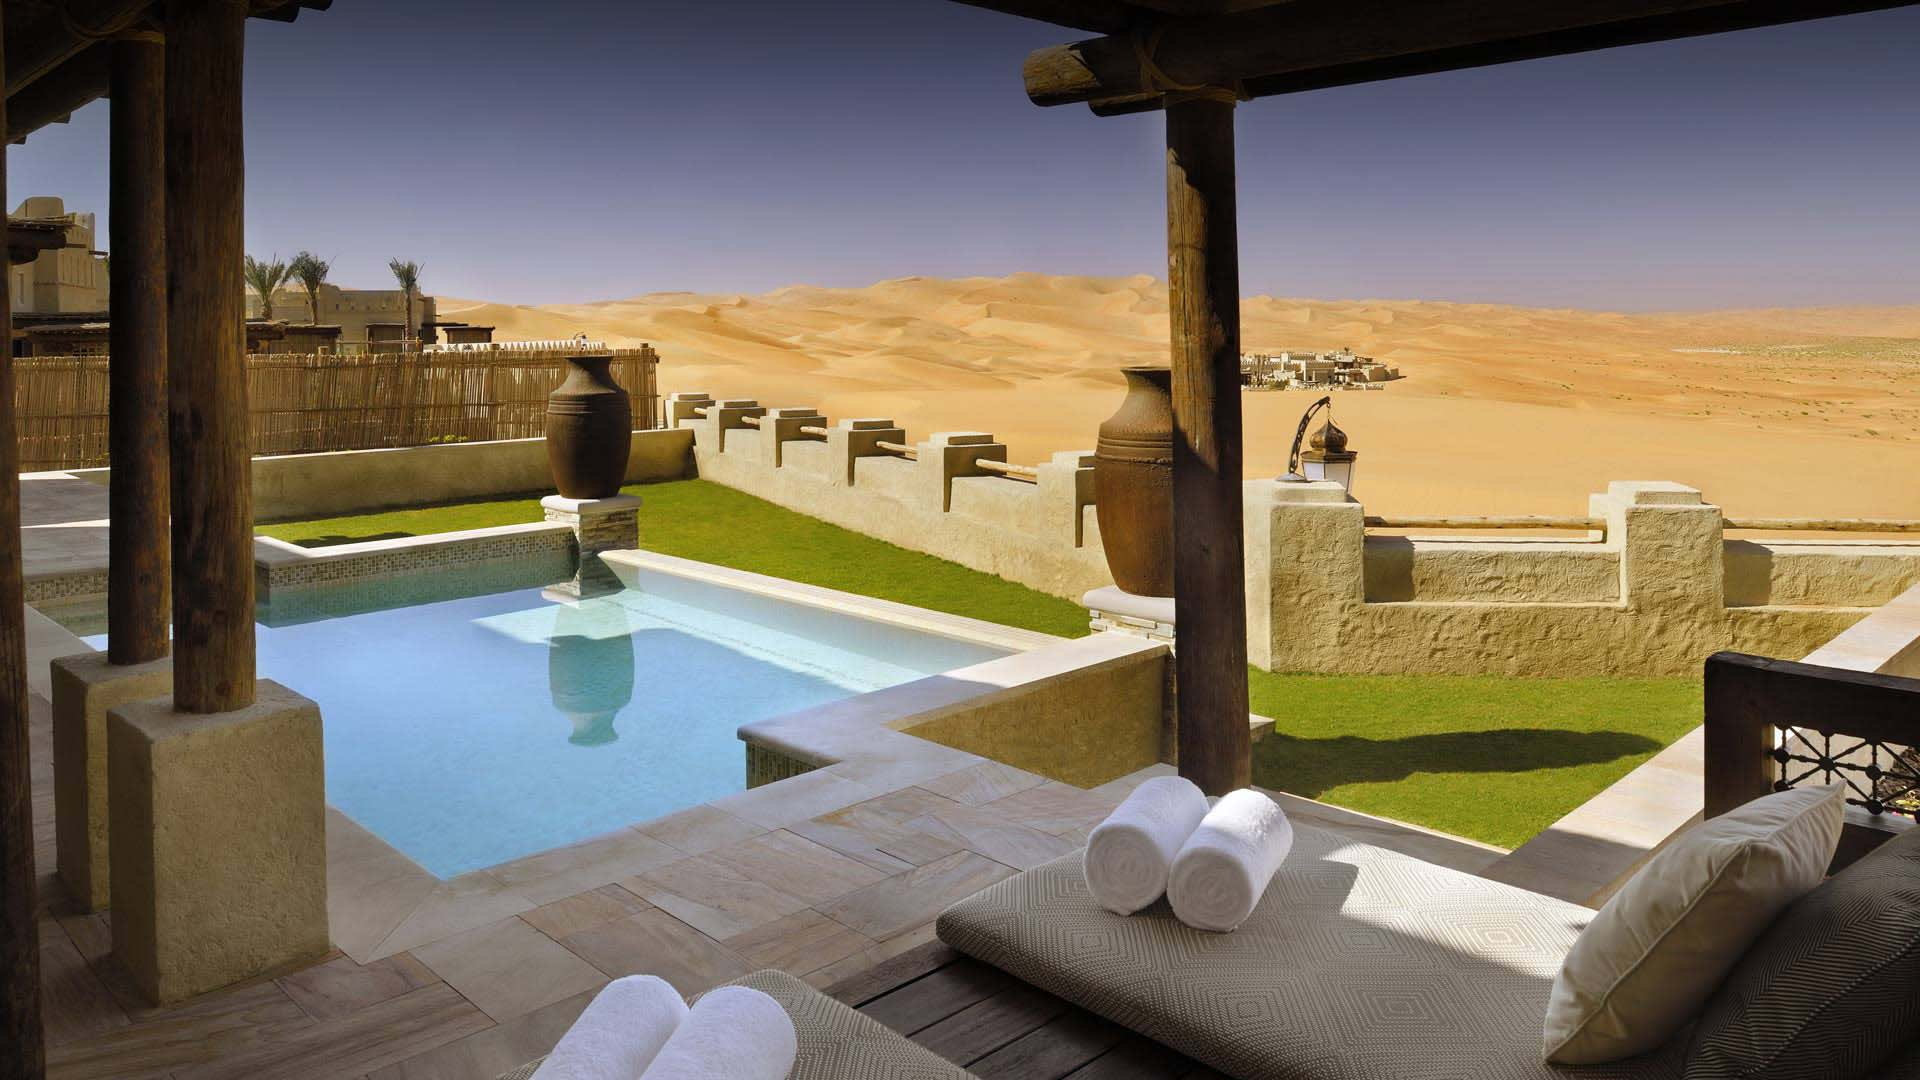 https://assets.anantara.com/image/upload/q_auto,f_auto/media/minor/anantara/images/qasr-al-sarab-desert-resort-by-anantara/the-resort/desktop-banner/qasr_al_sarab_by_anantara_private_pool_header_1920x1080.jpg